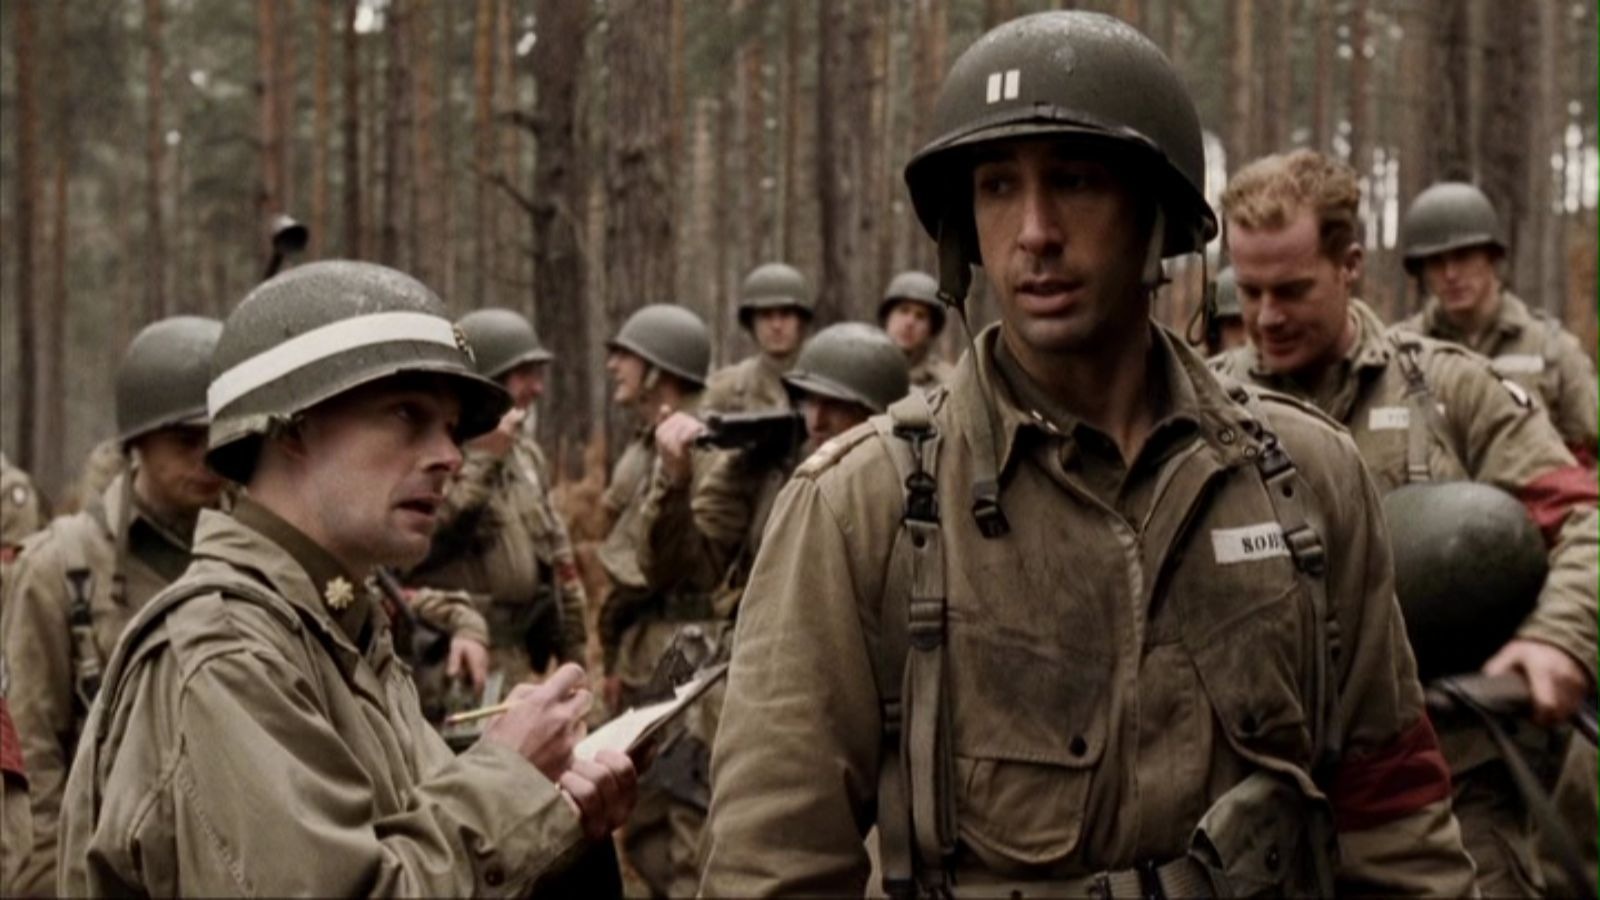 Pin by kim hurd on Best war movies Band of brothers